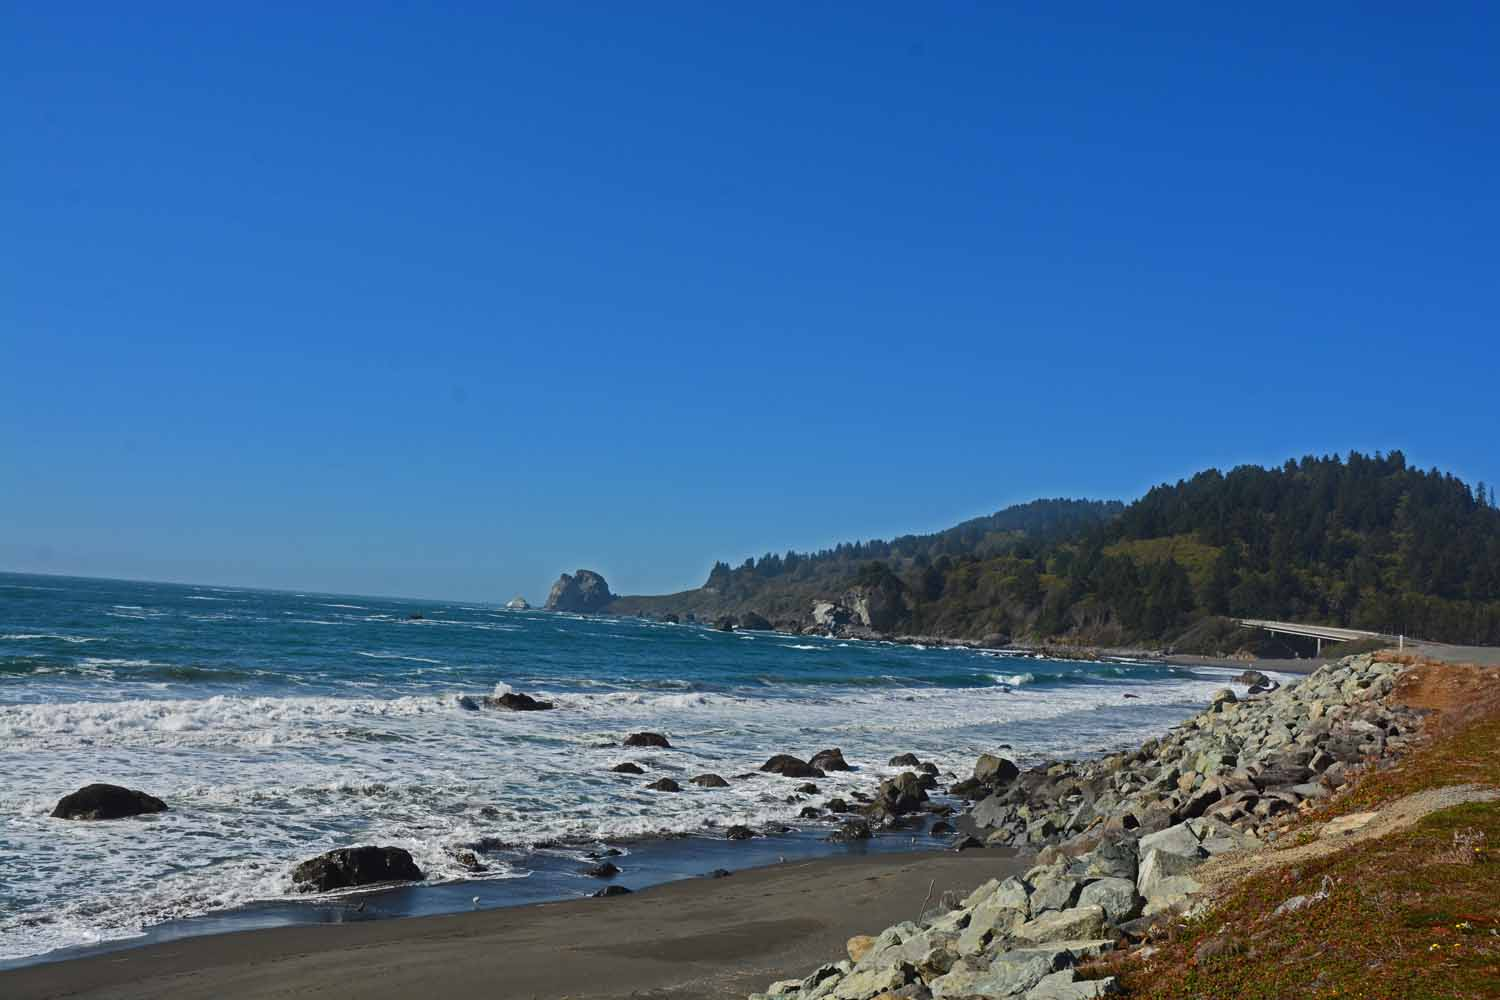 Northern California has a great coast too.